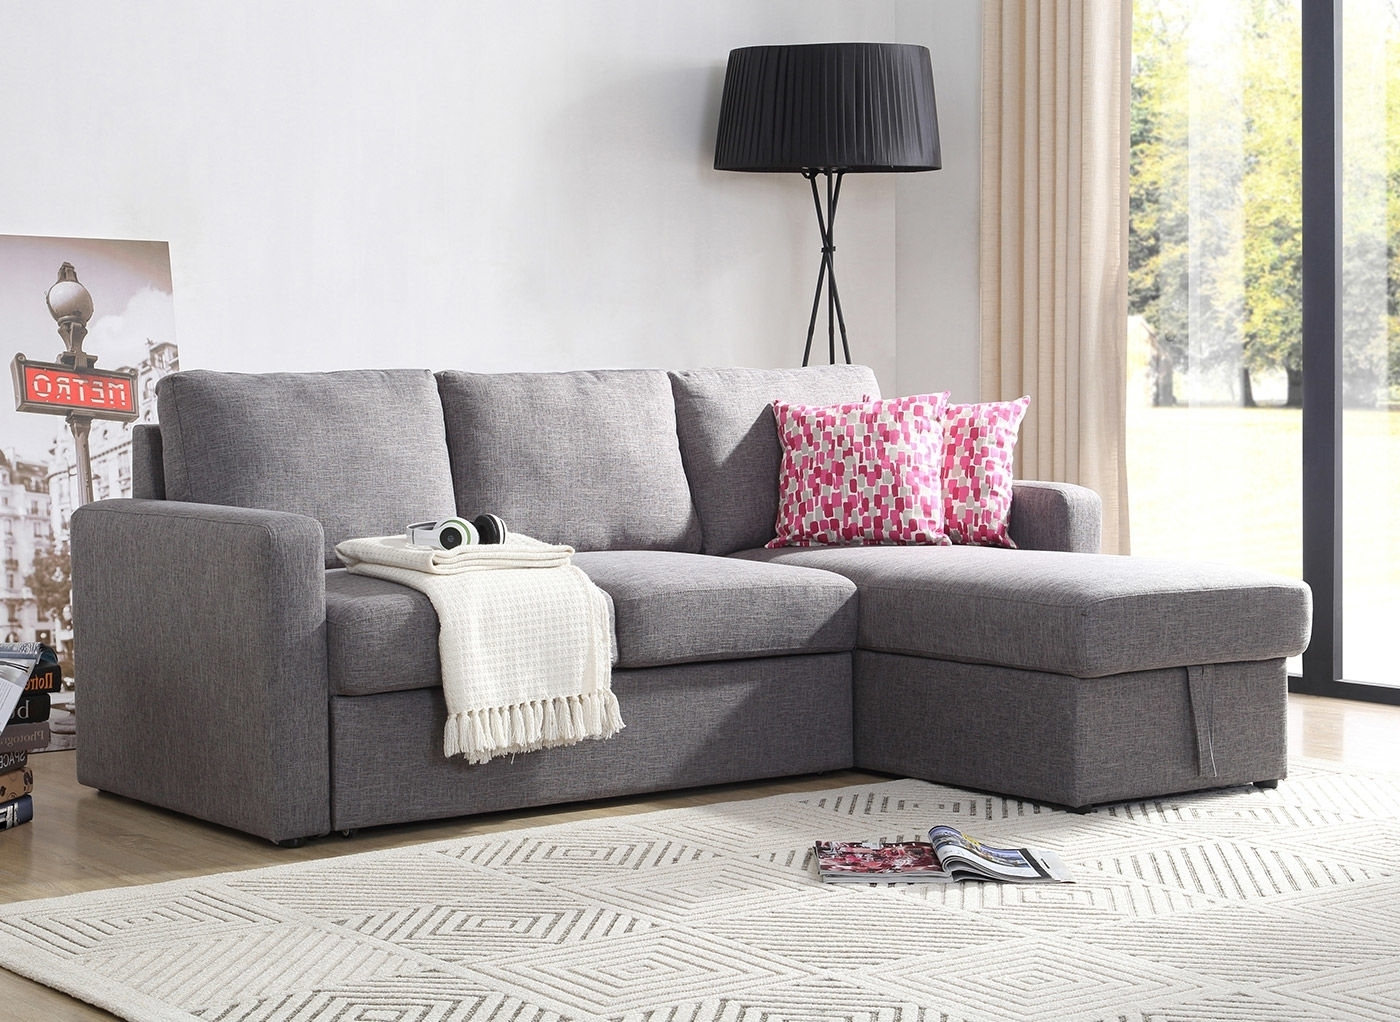 Sectional Sofas At Bad Boy Pertaining To Trendy Bad Boy Furniture Sectional Sofas • Sectional Sofa (View 12 of 20)